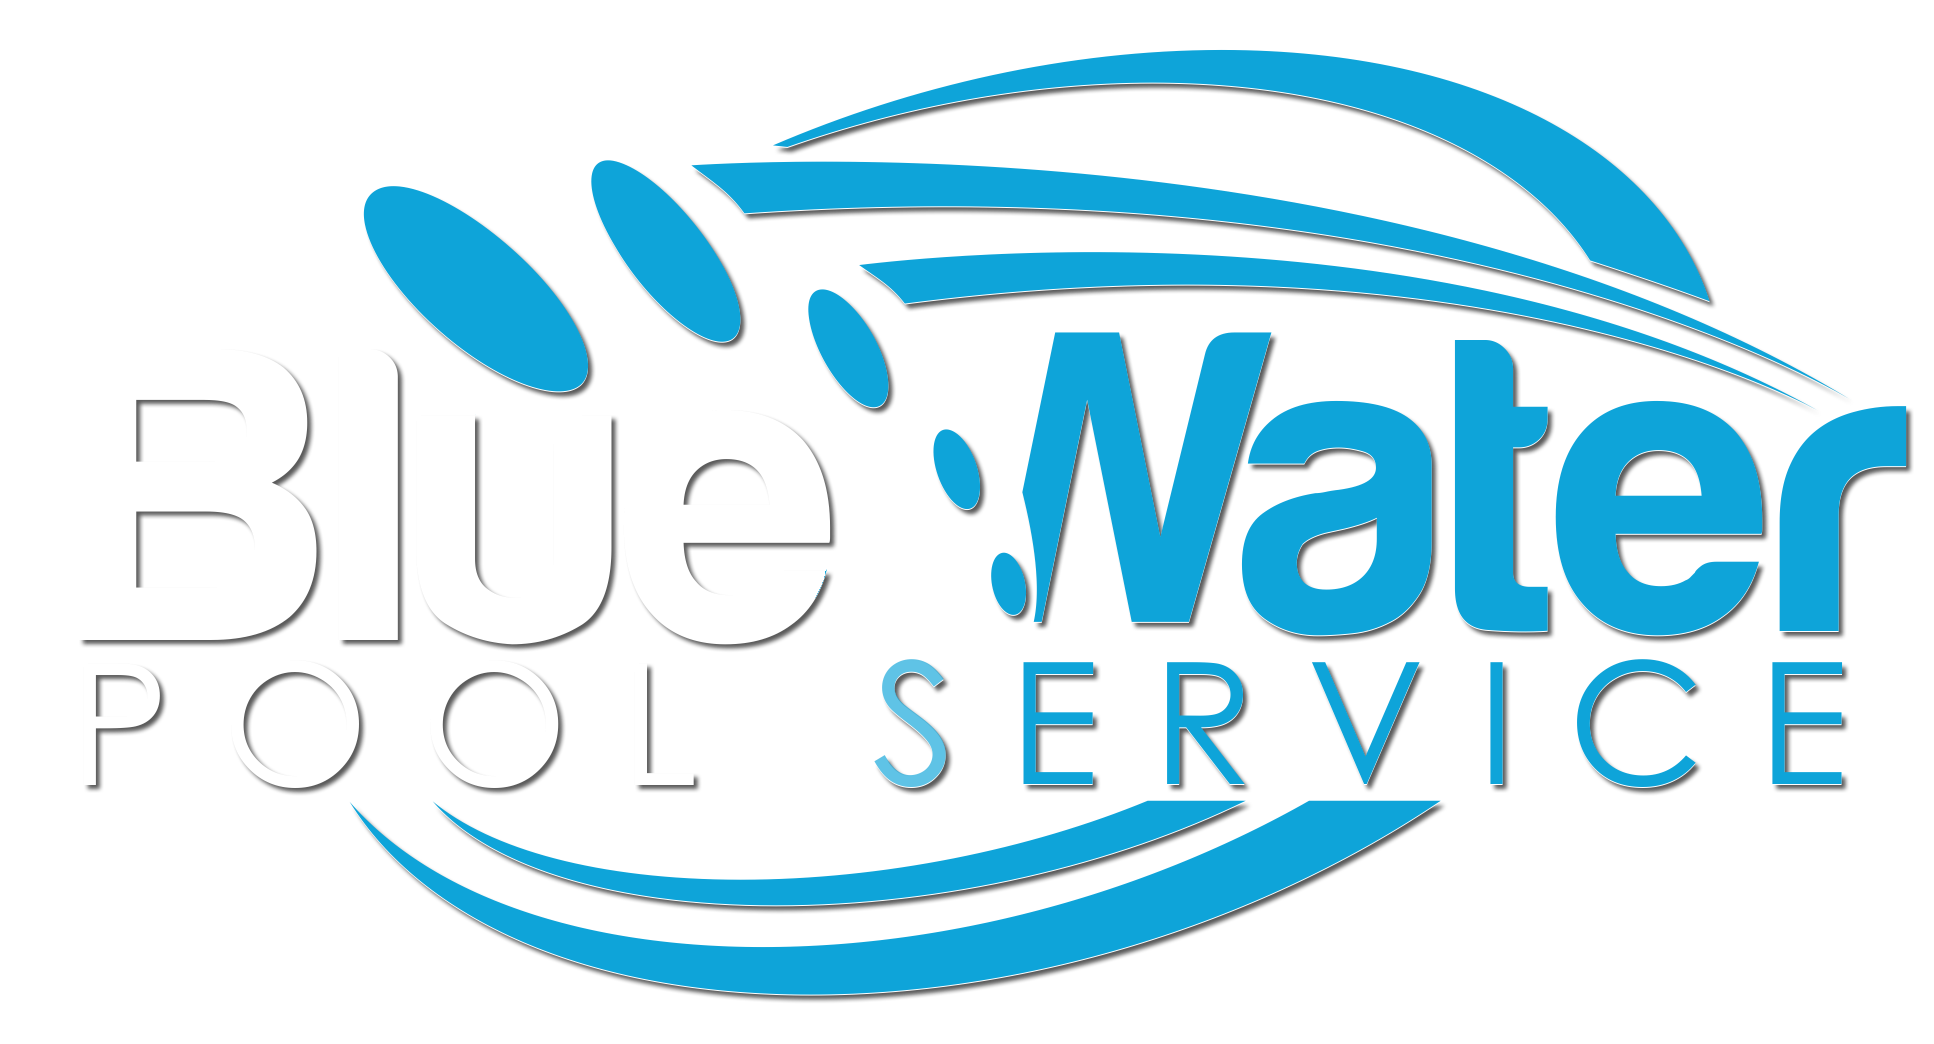 #1 Pool Service In St. Louis